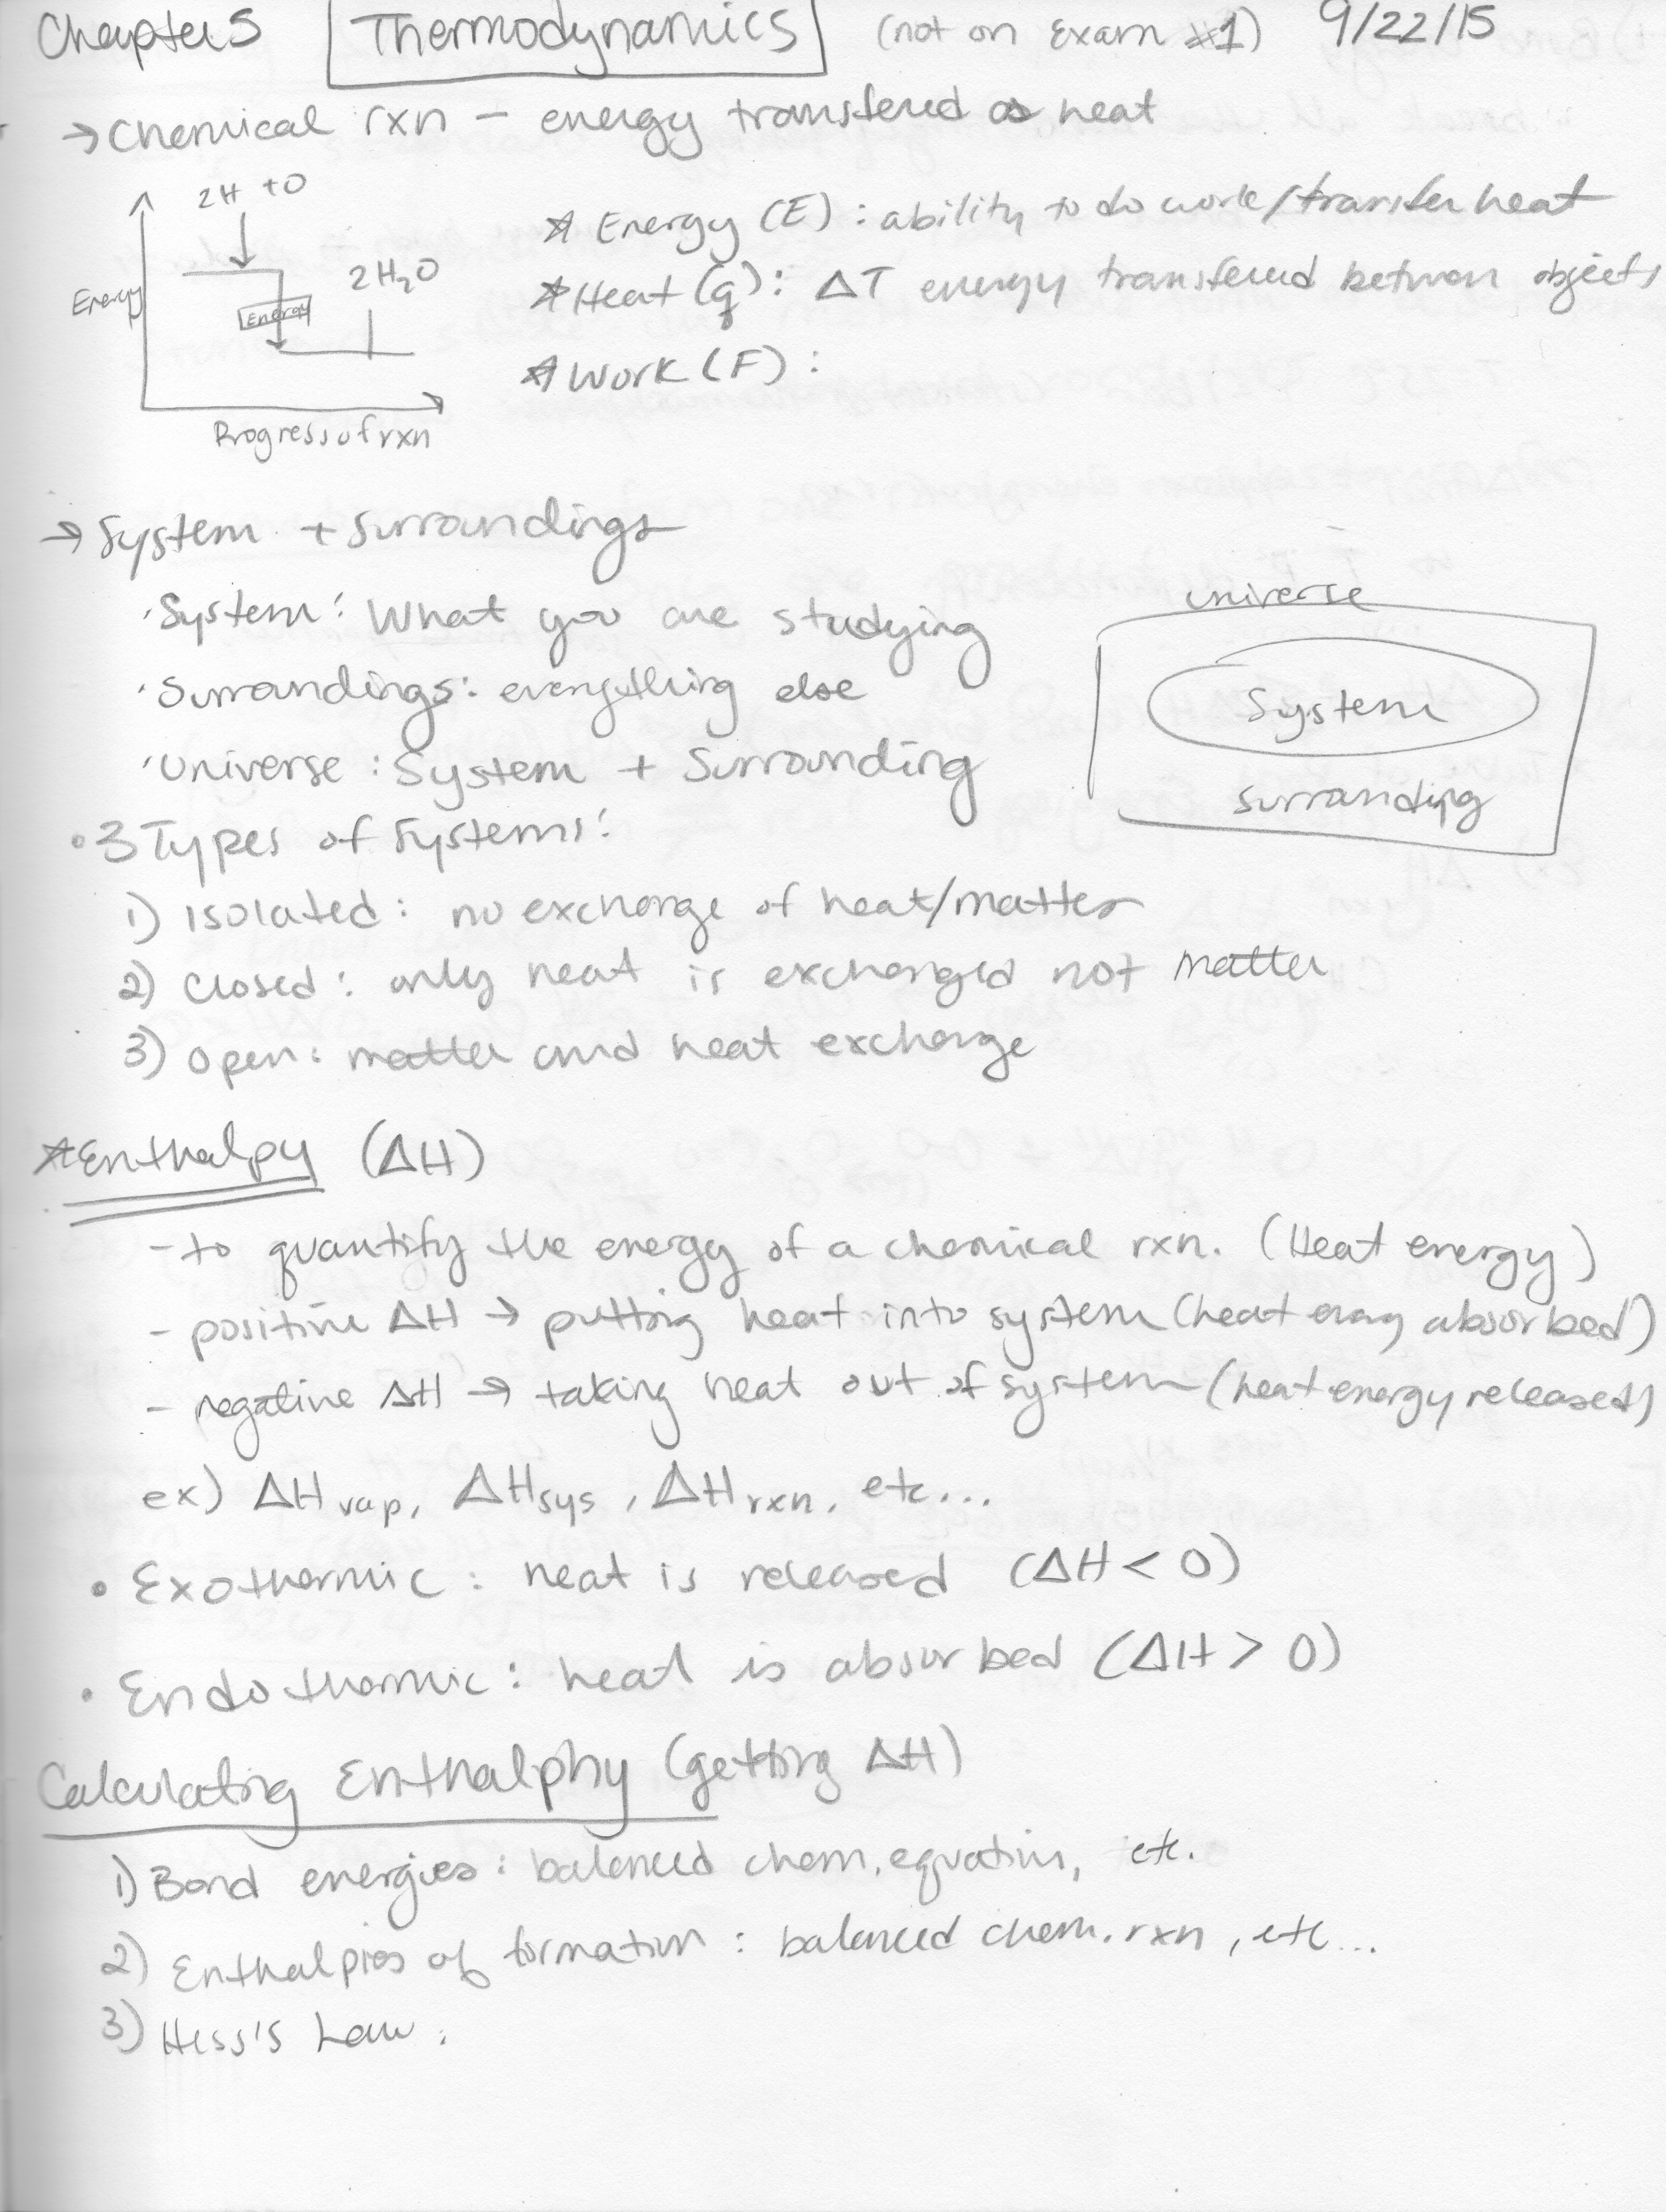 Sci 030 - Class Notes - Week 6